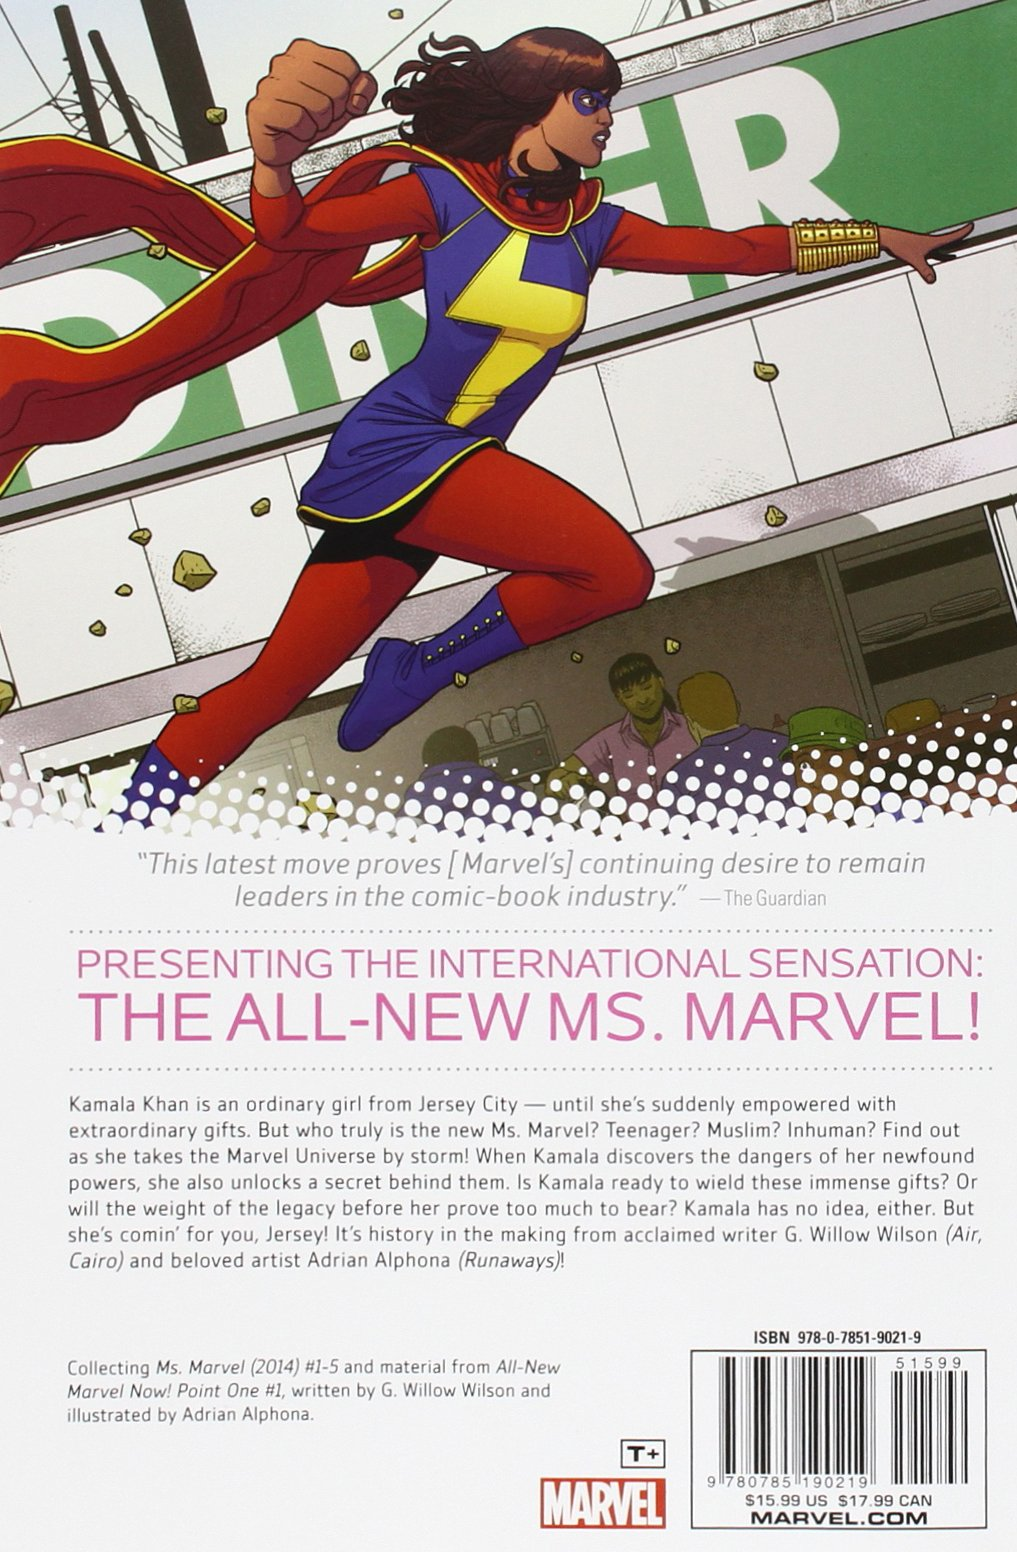 Amazon: Ms Marvel Volume 1: No Normal (ms Marvel Graphic Novels)  (8601421073080): G Willow Wilson, Adrian Alphona: Books